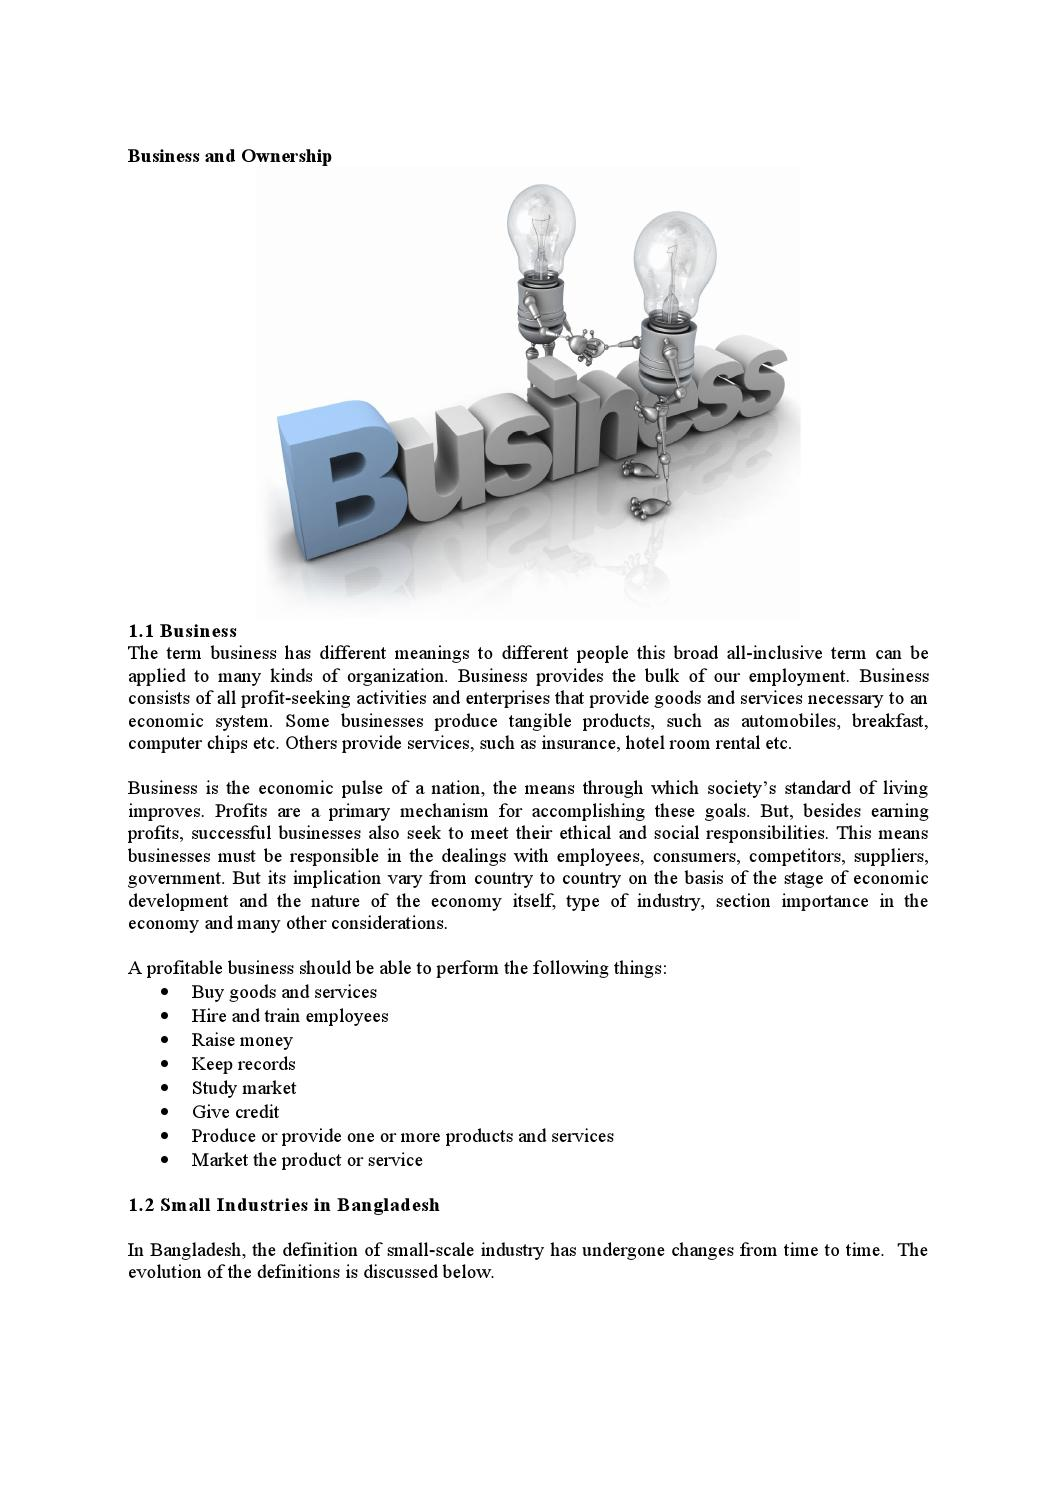 Brief analysis on business and ownership by Md Papon - issuu